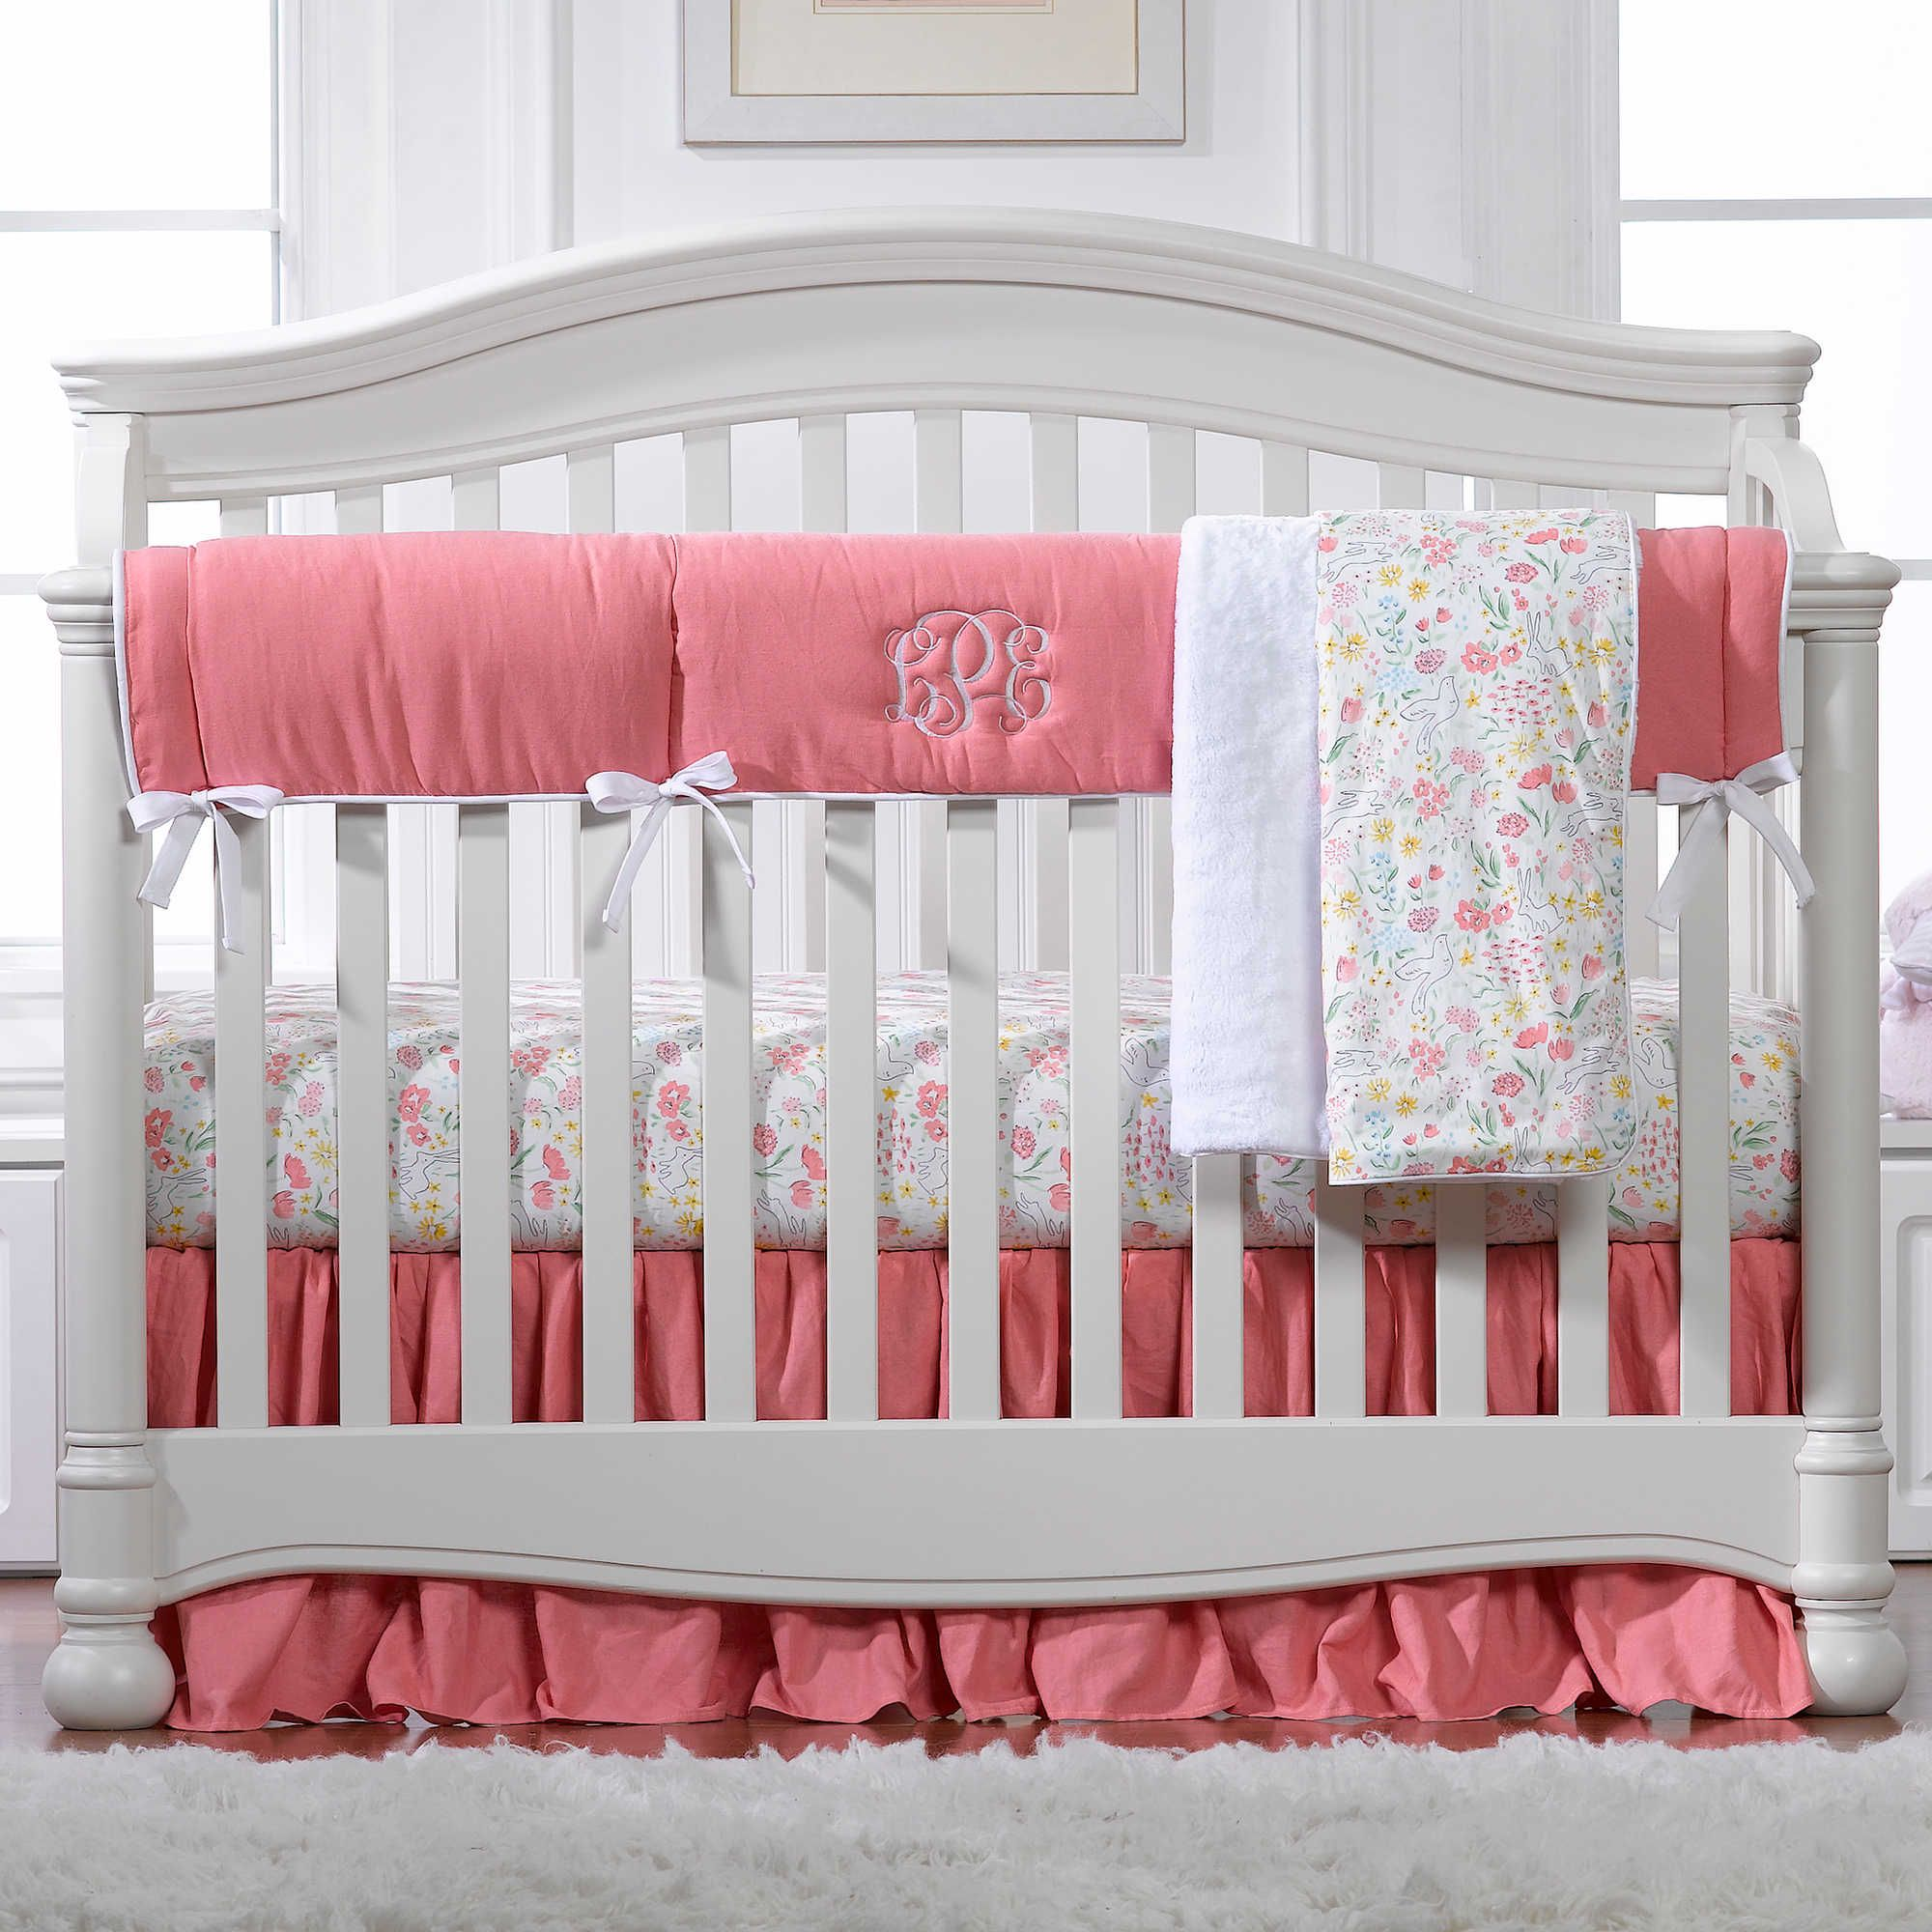 chenille bedding l baby sheets girl and for gray crib floral pink chevron set cribs shabby